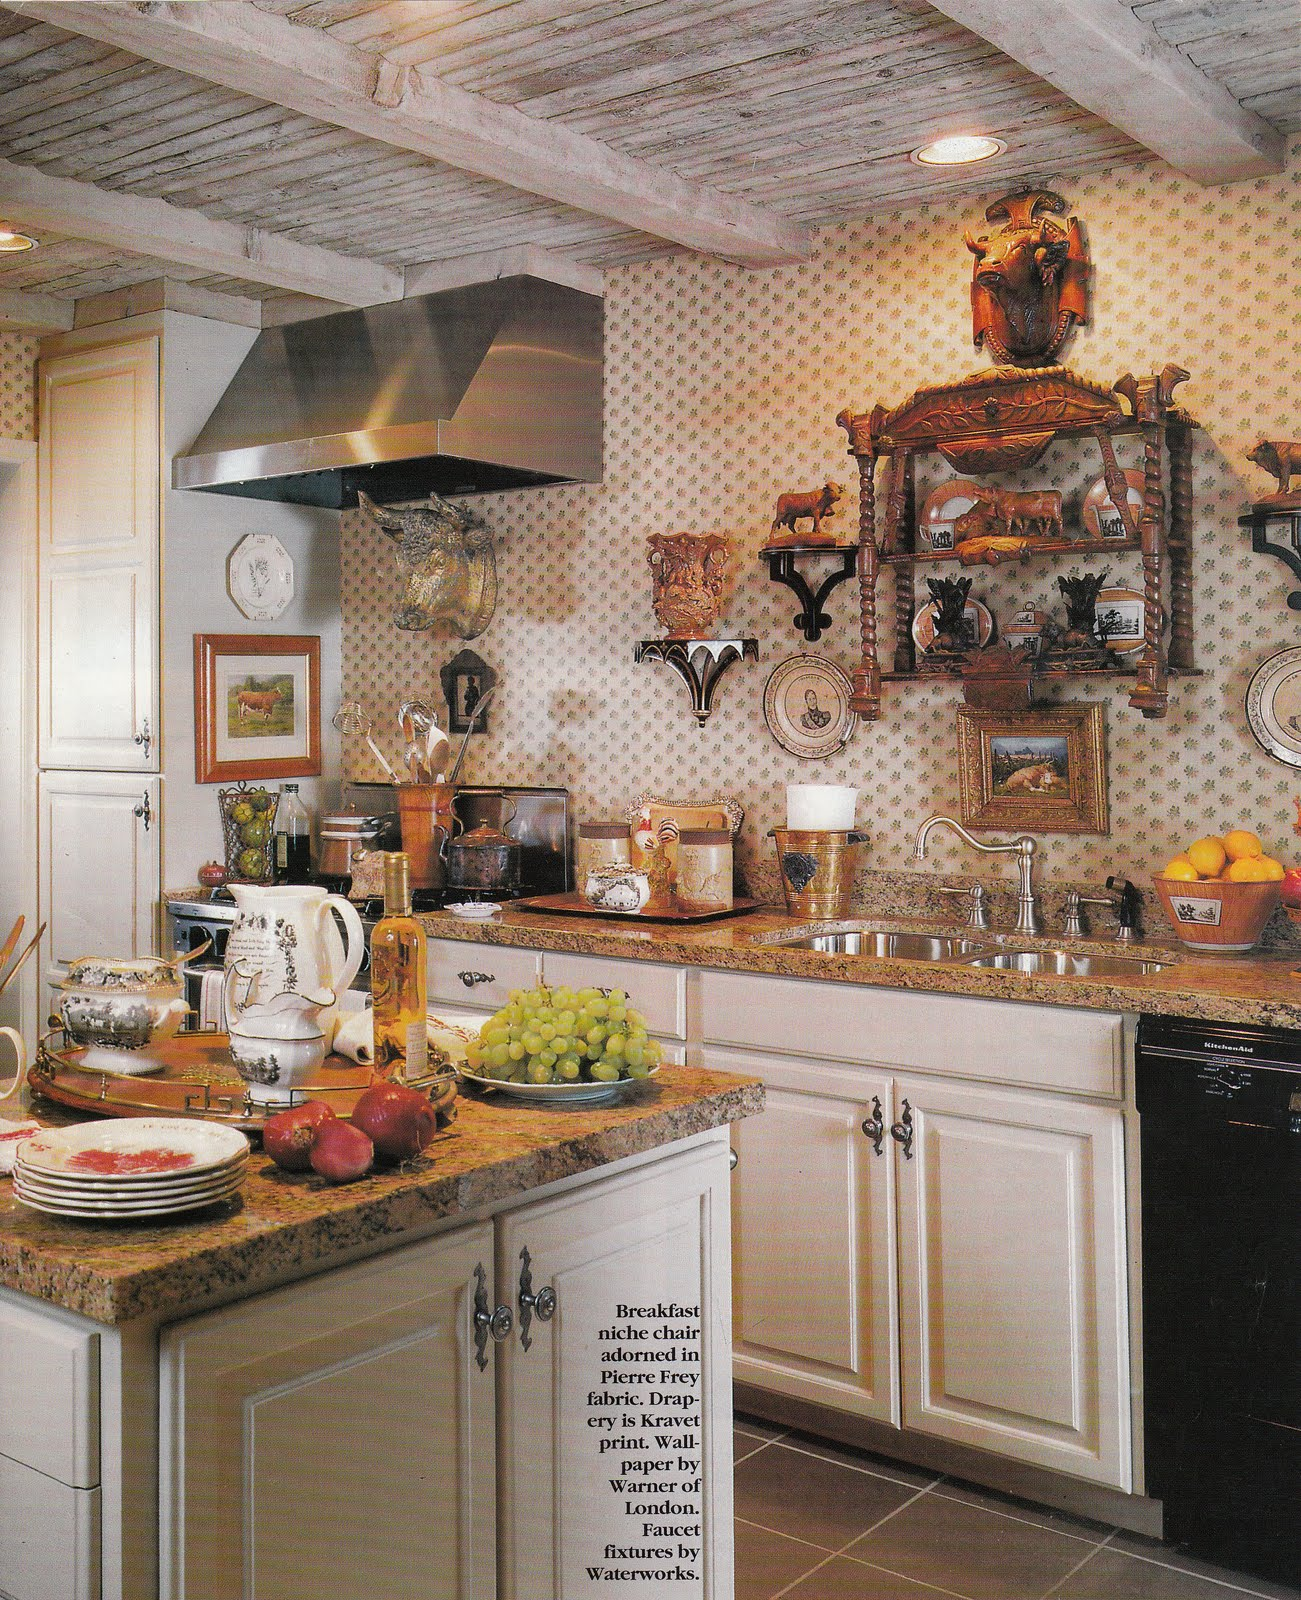 Hydrangea hill cottage french country decorating - French country kitchens ...